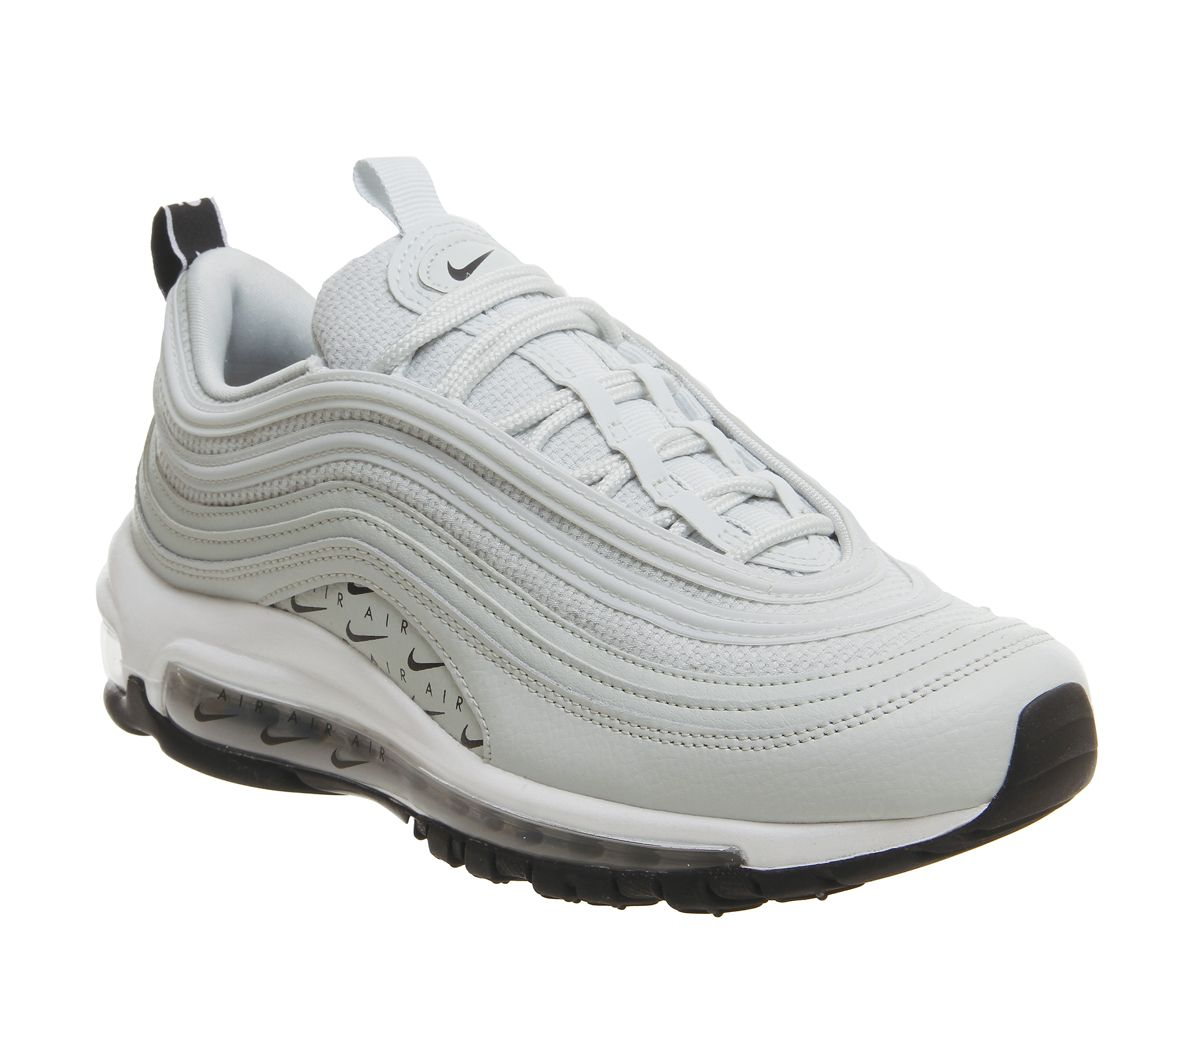 Nike Air Max 97 Trainers Silver Black White - Hers trainers